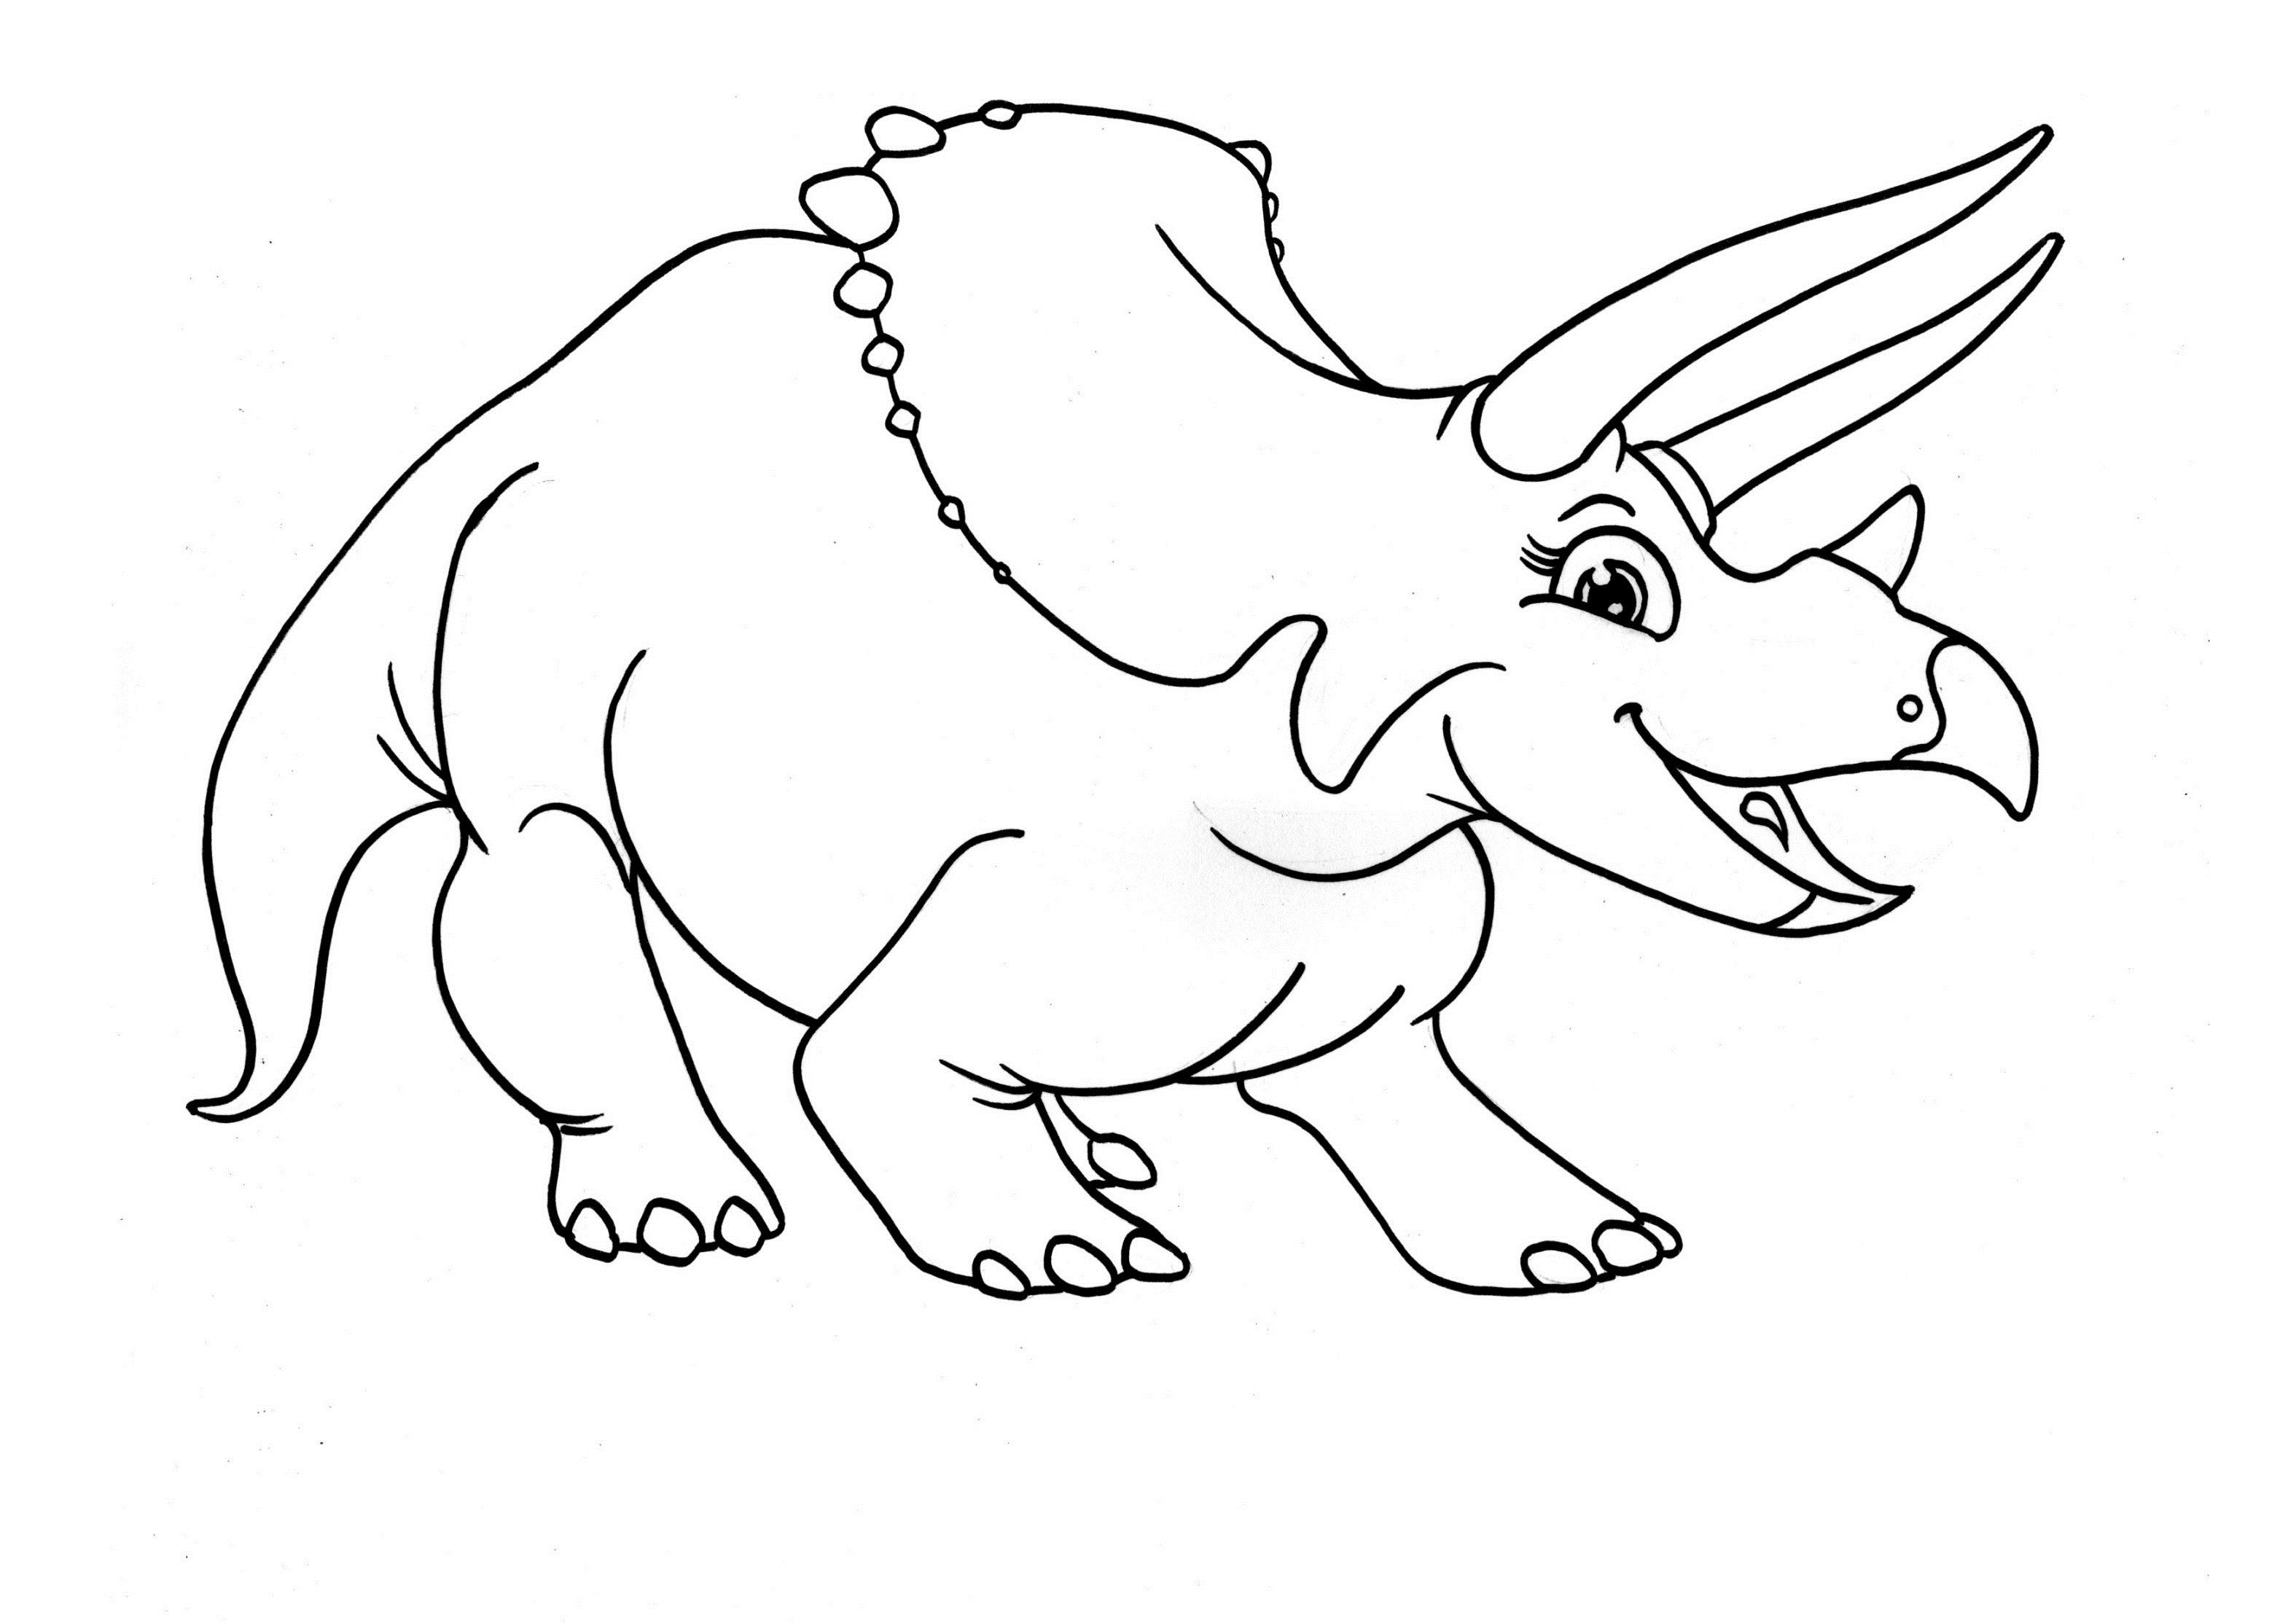 Dinosaur Clipart Coloring Page Triceratop Pencil and In Color Gallery Of Coloring Book and Pages Free Printable Dinosaur Habitat Coloring Printable